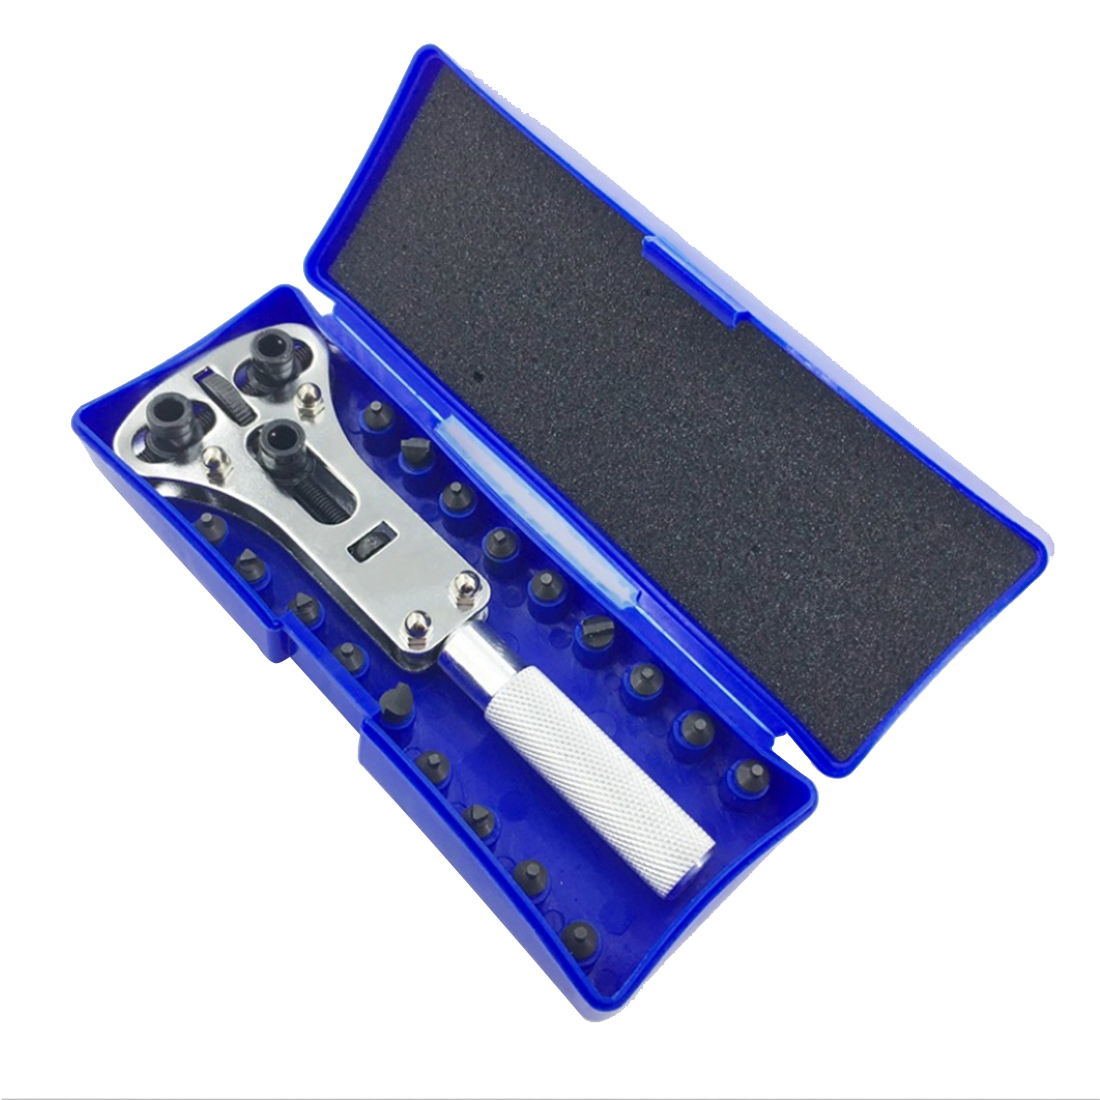 Adjustable Wrench Open Tool Watch Back Case Opener Watchmaker Base Screws Disassembly Watch Repair Tool цена